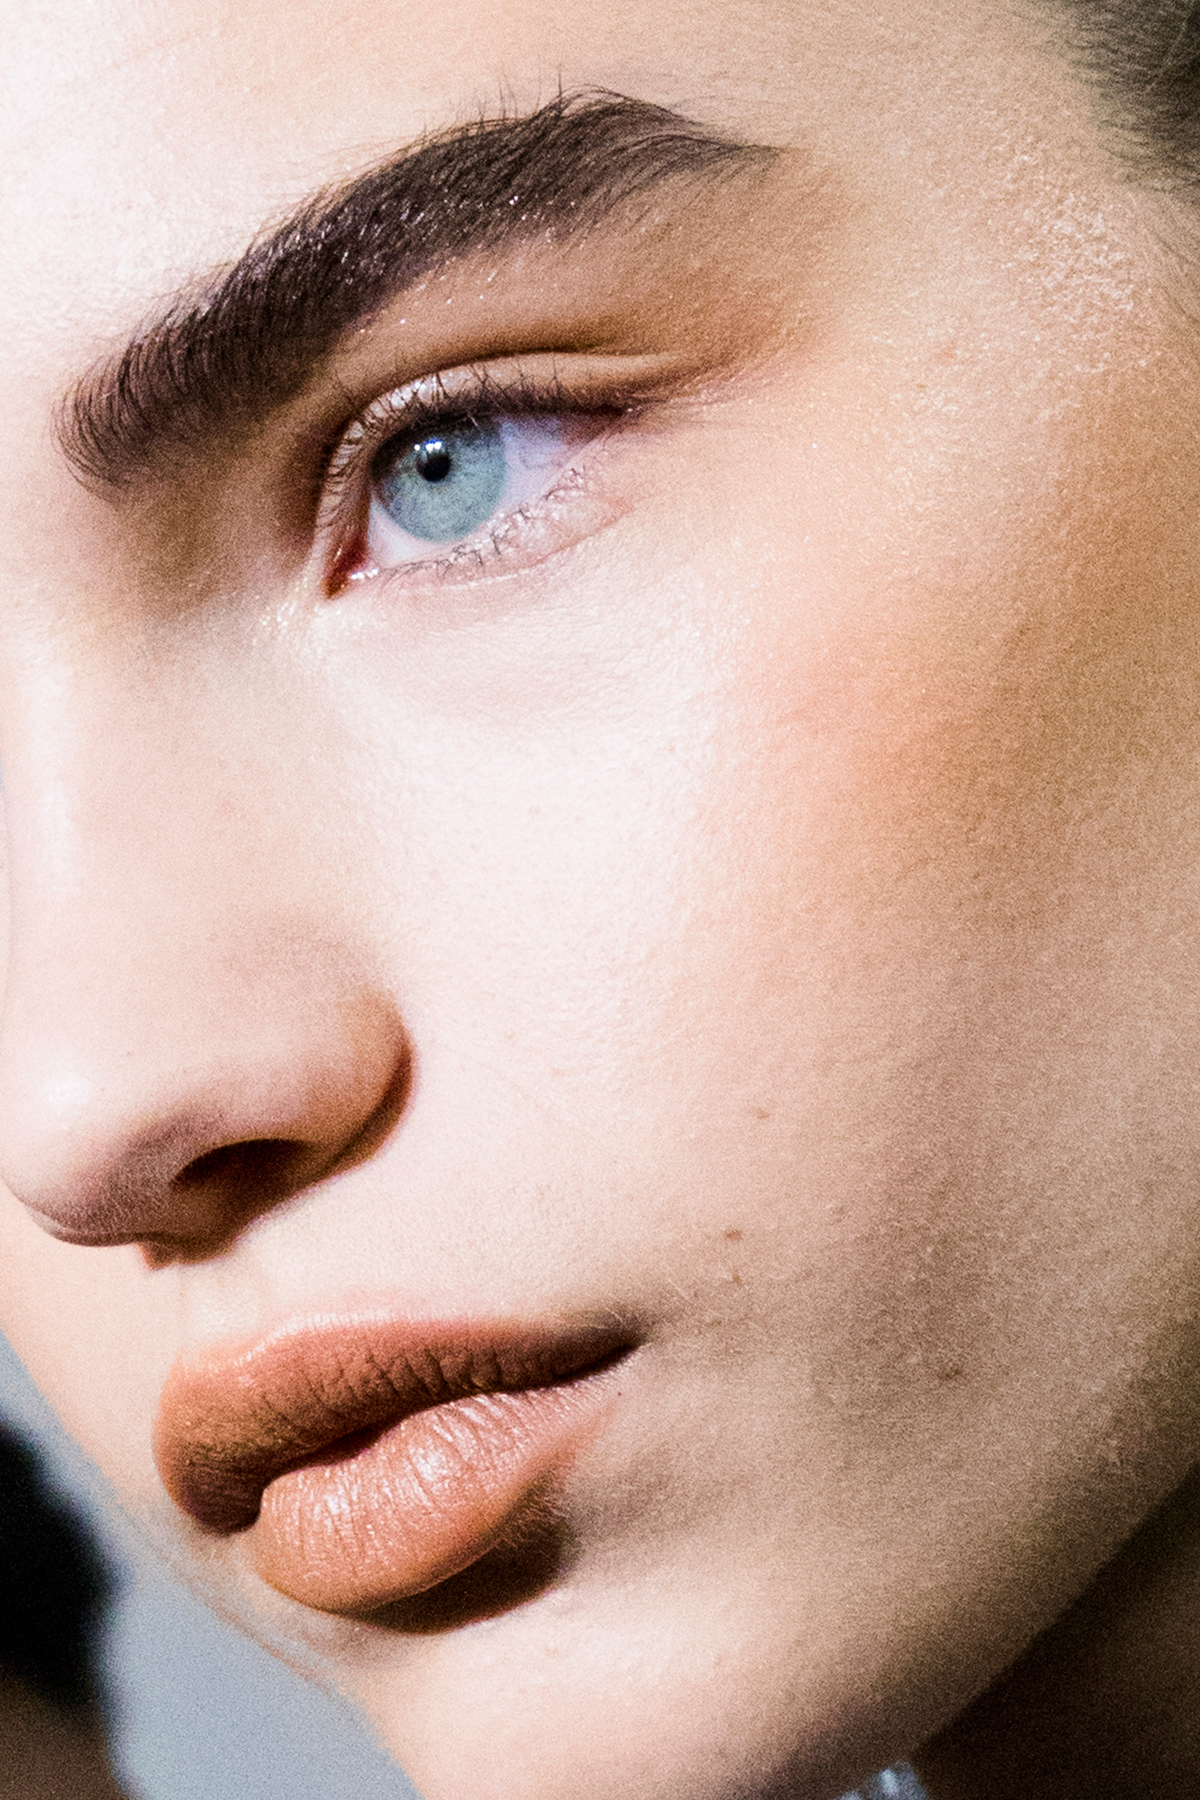 How to Tweeze Your Eyebrows Without Making a Disastrous Mistake